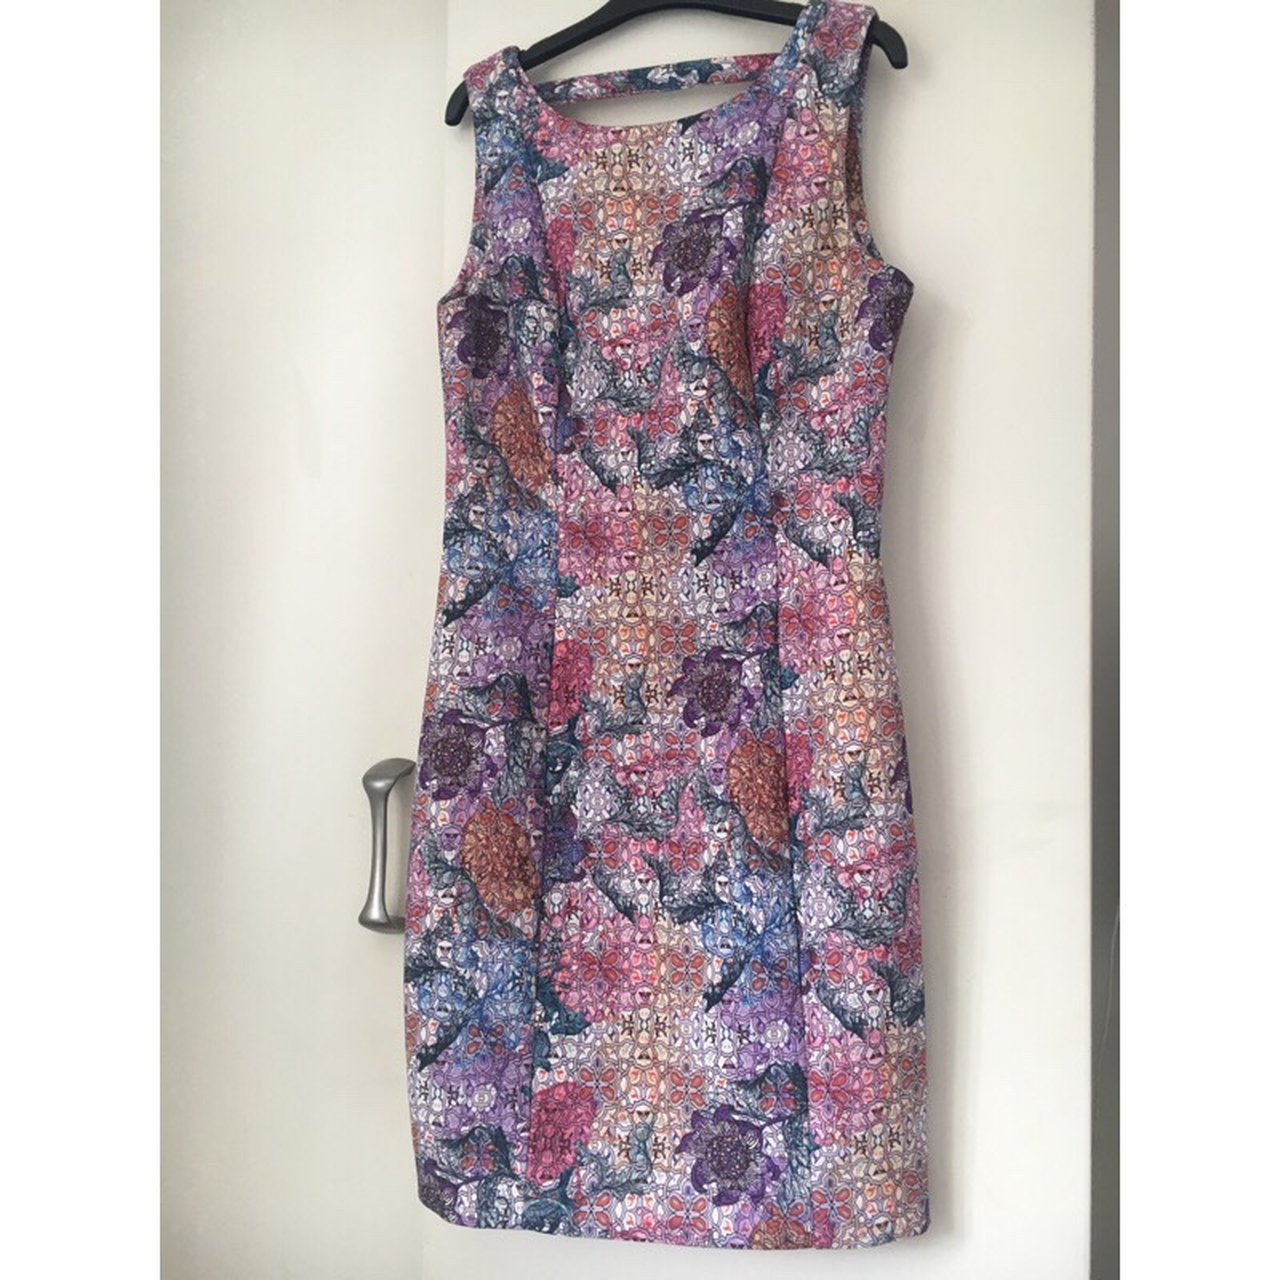 7434075c659e Limited Edition H M mosaic floral dress 🌸🌺 Worn Once to a - Depop